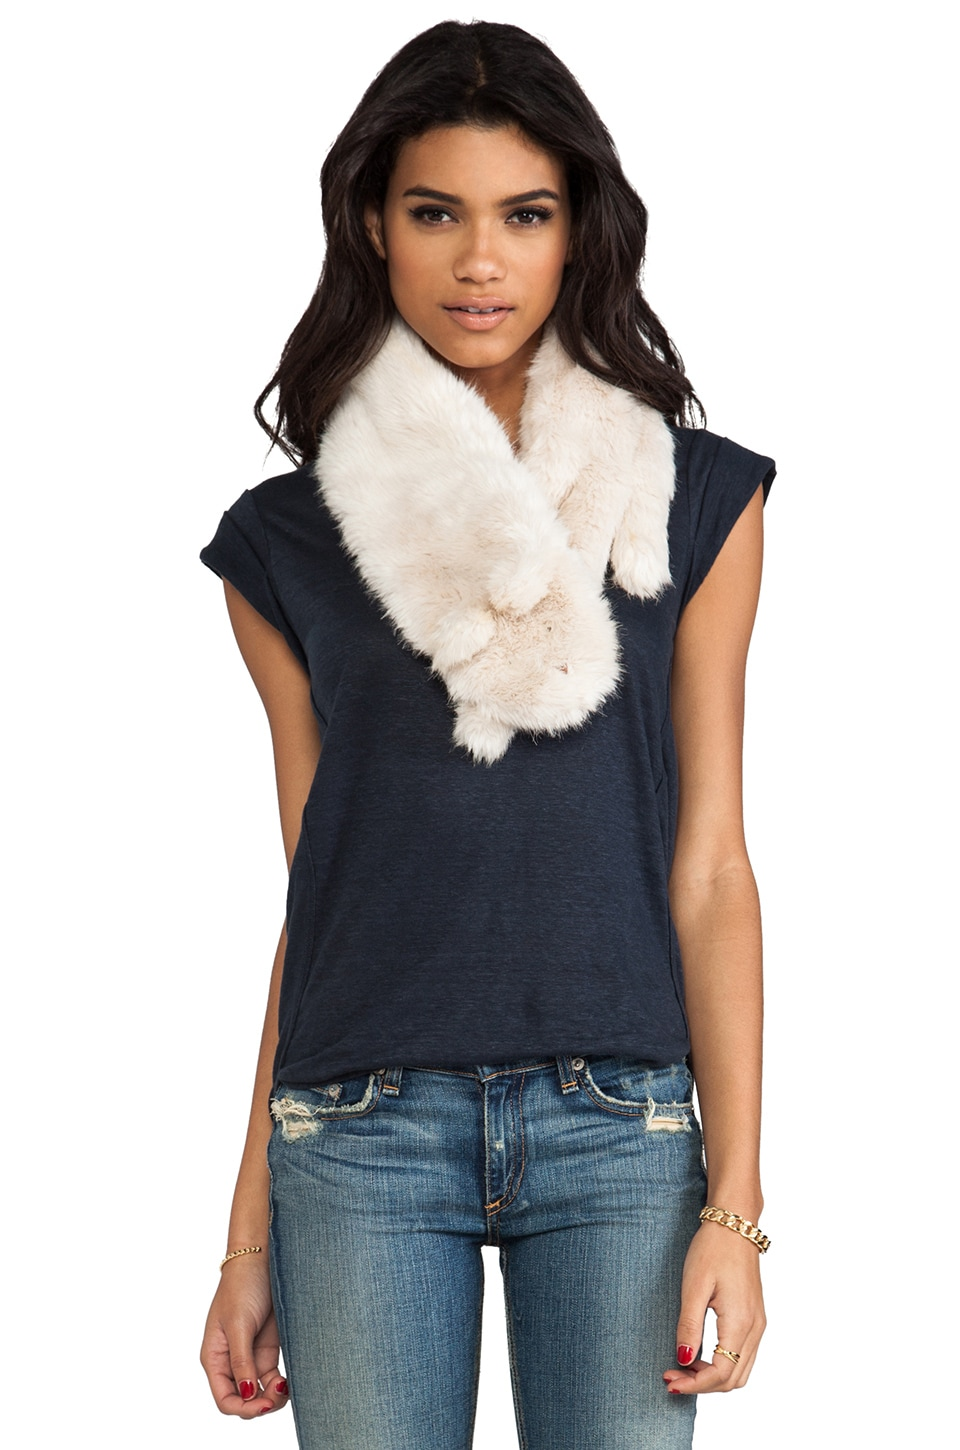 Marc by Marc Jacobs Rue Faux Rabbit Fur in Antique White